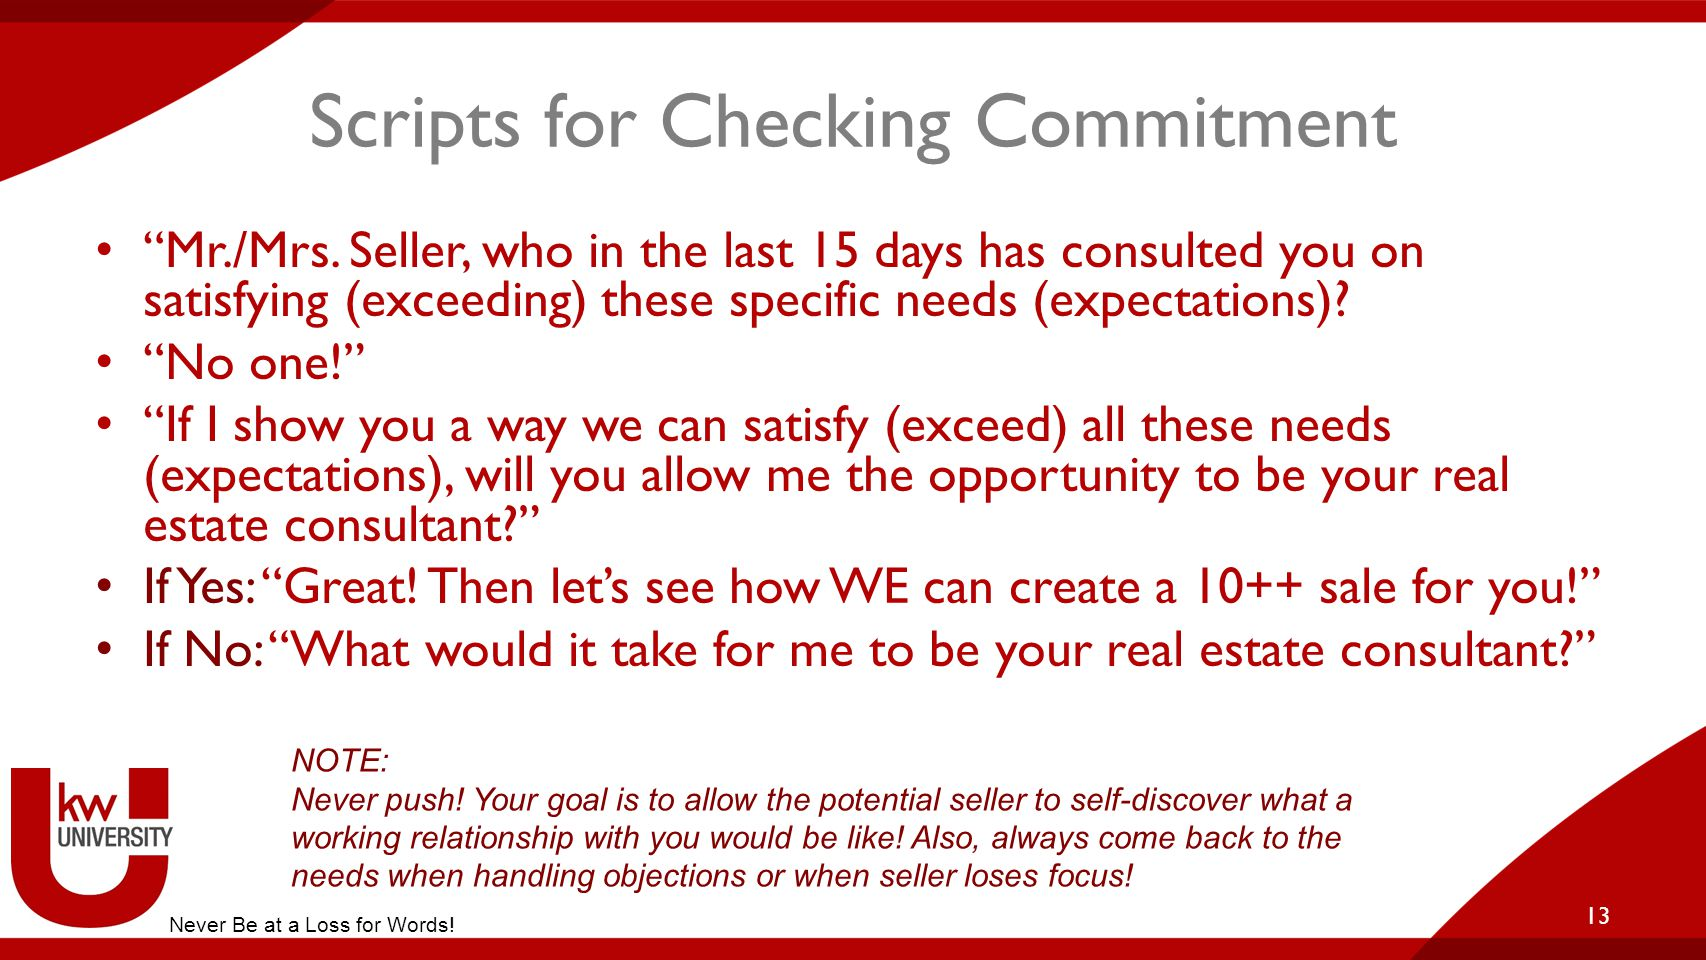 Scripts for Checking Commitment